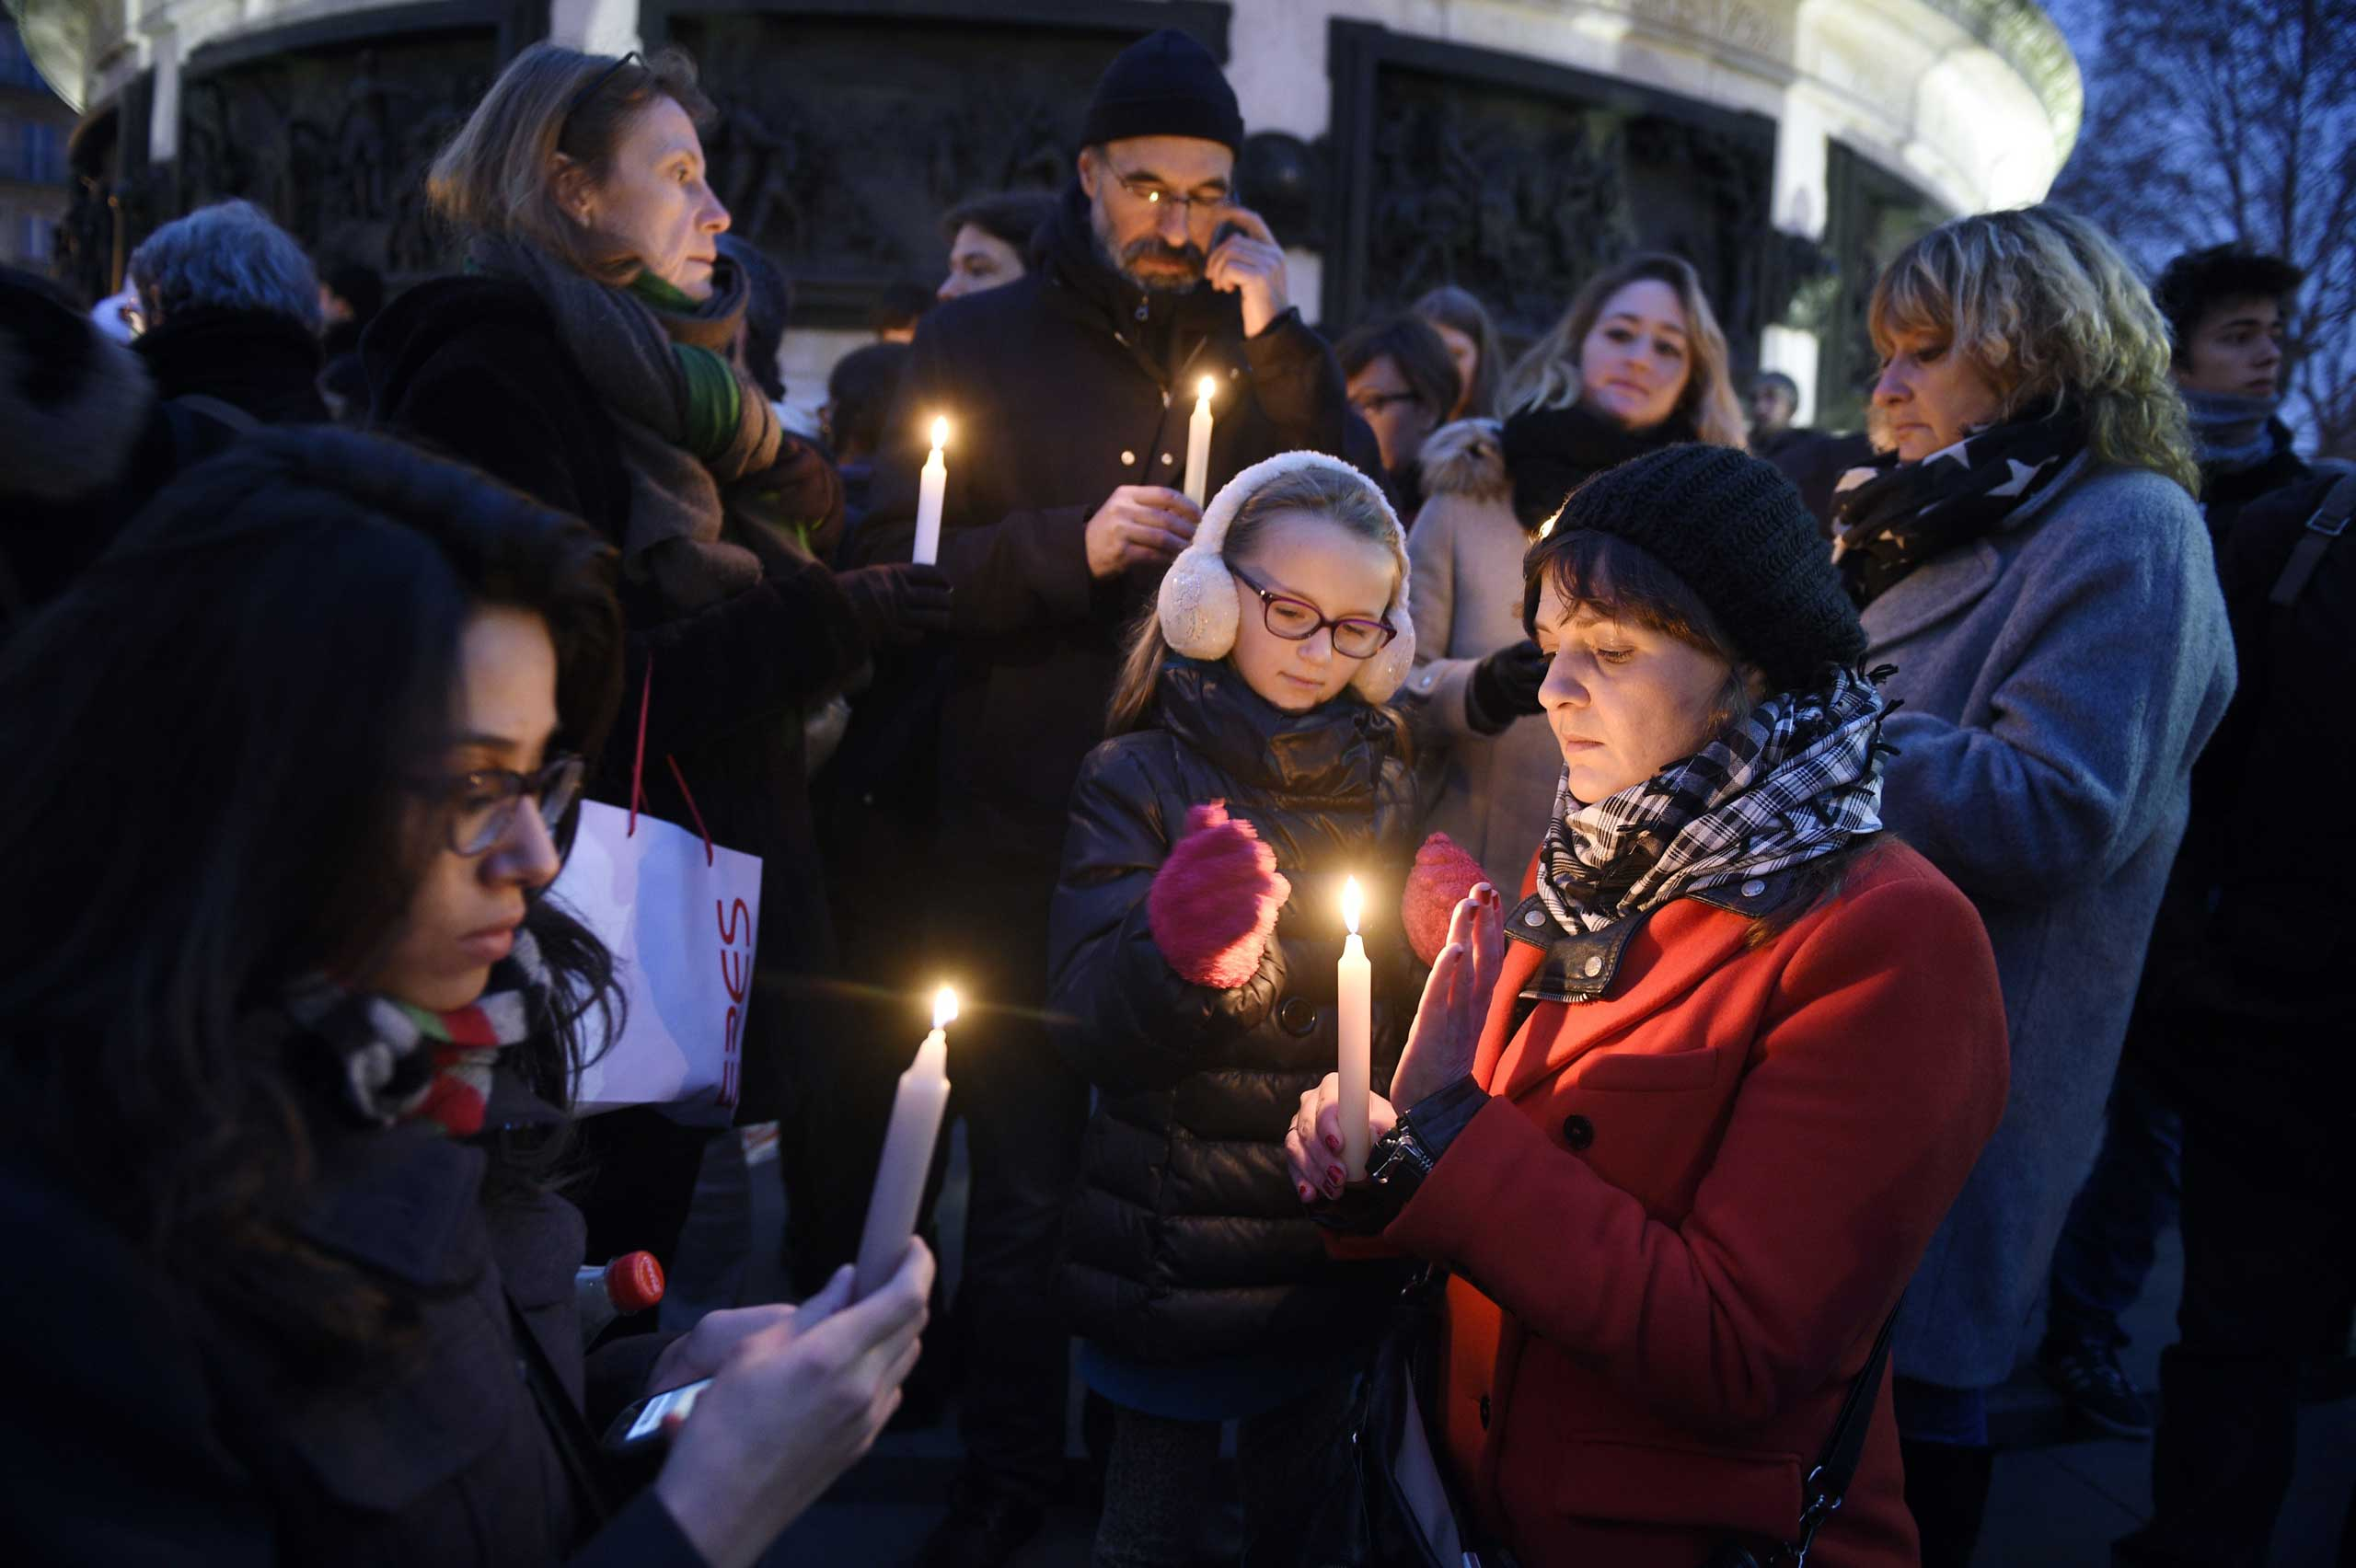 People light candles during a rally in support of the victims of the attack by gunmen at French satirical newspaper Charlie Hebdo at the Place de la Republique in Paris, on Jan. 7, 2015.